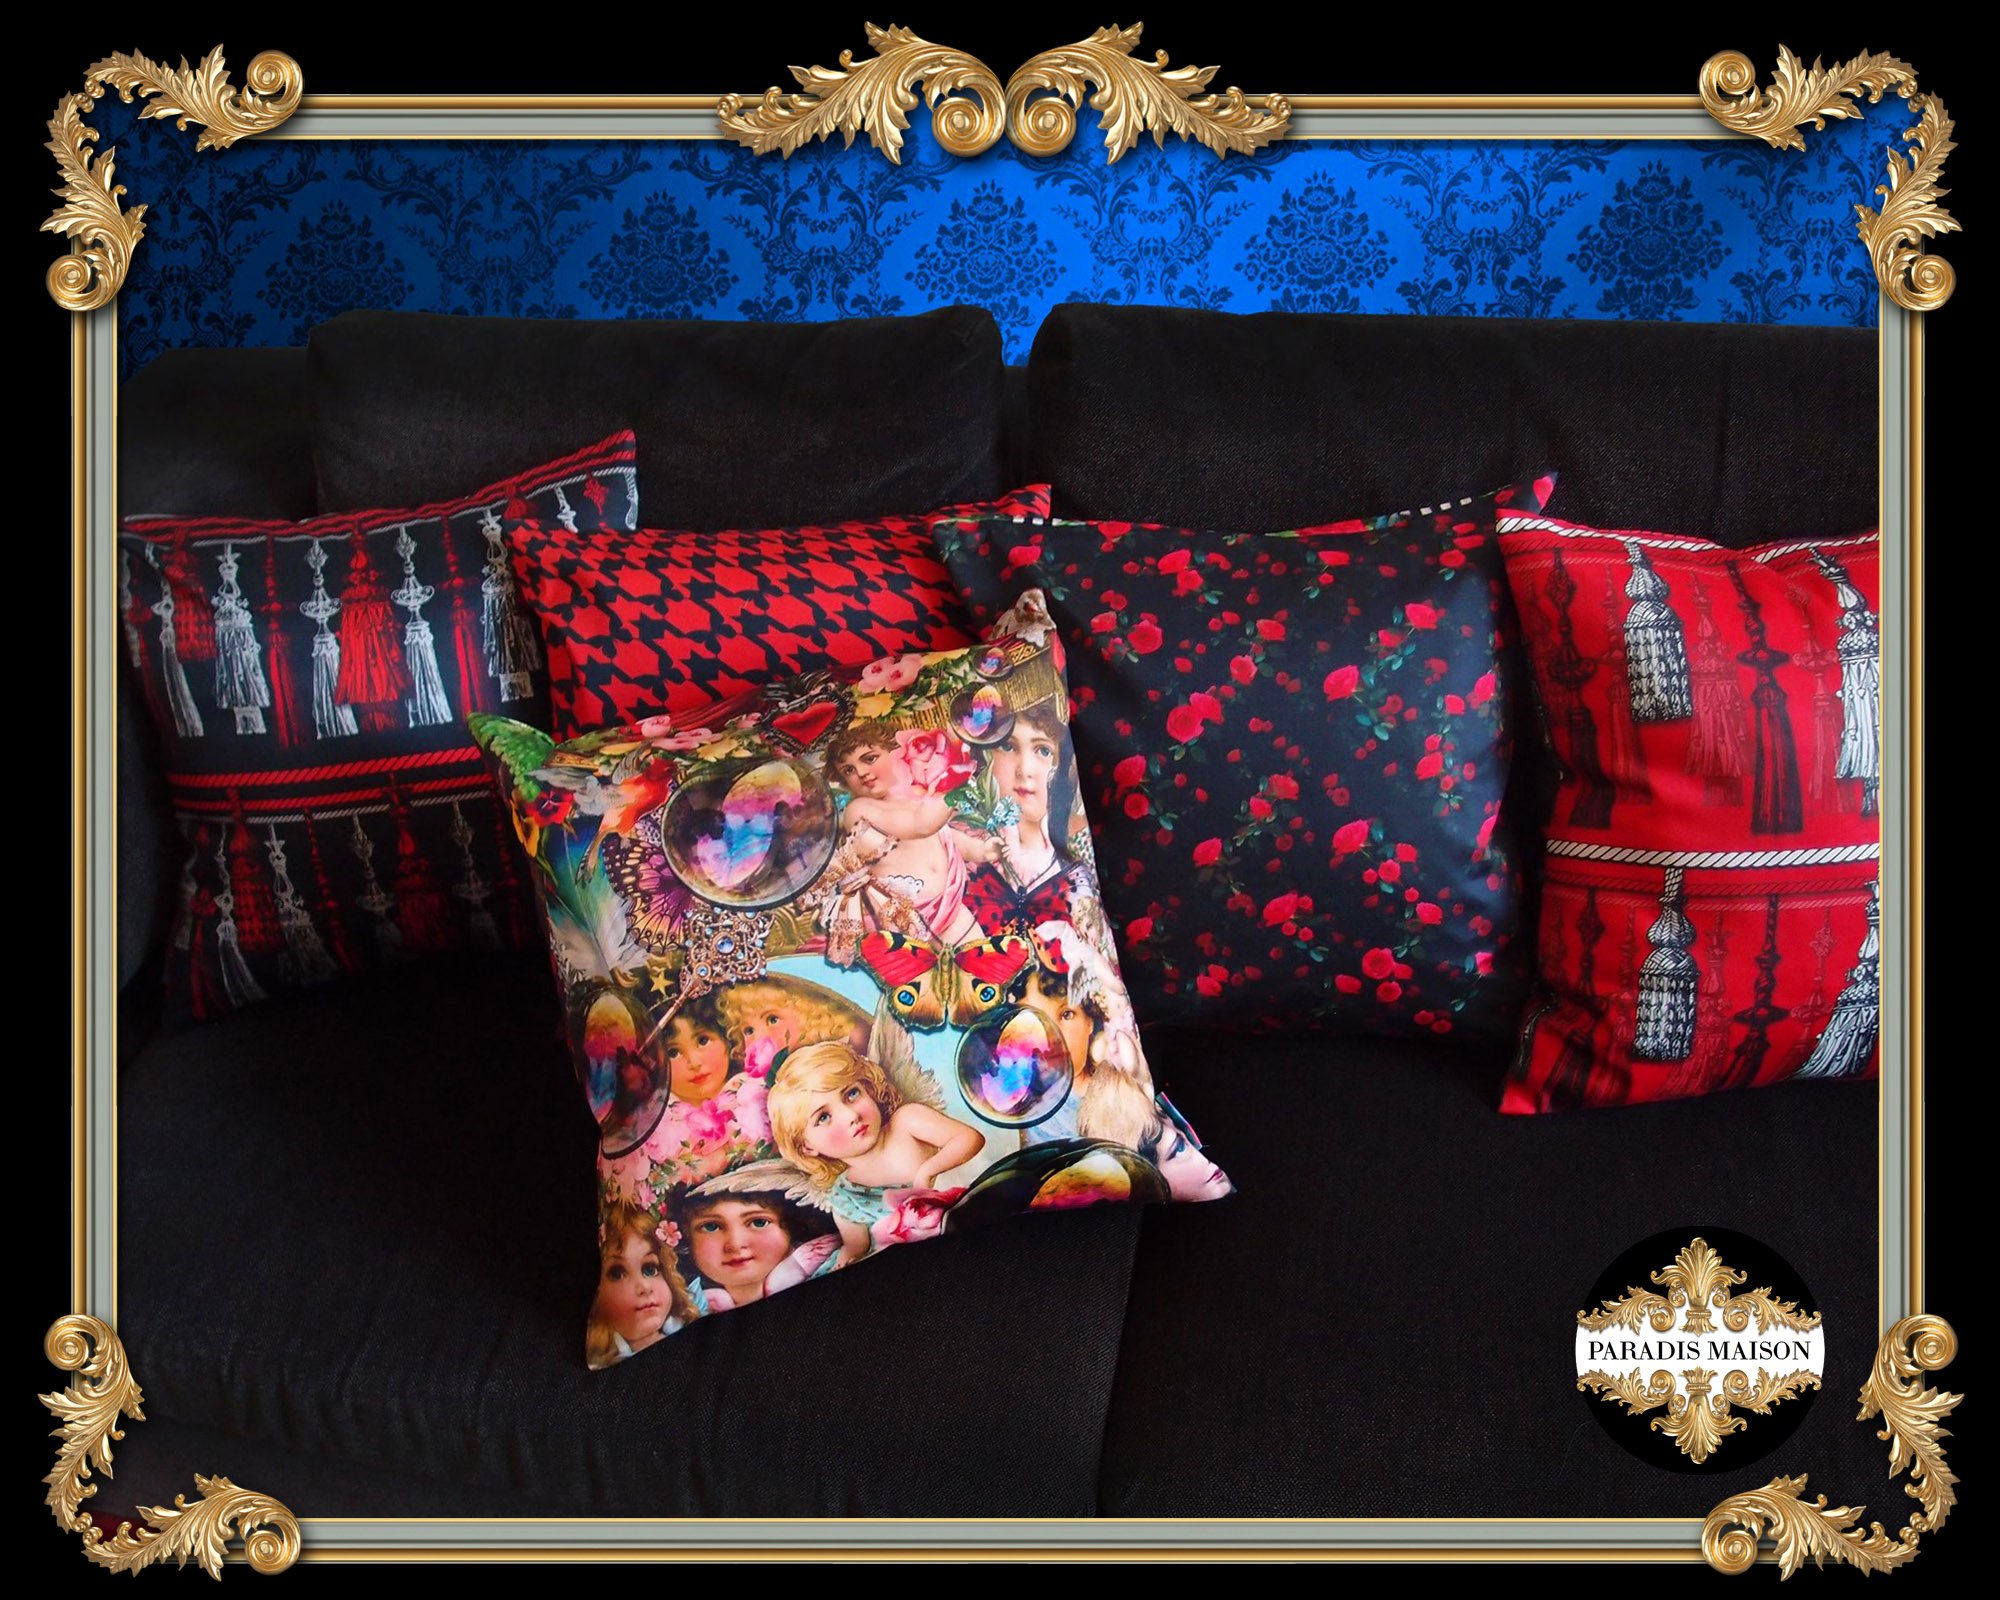 paradis maison pillows